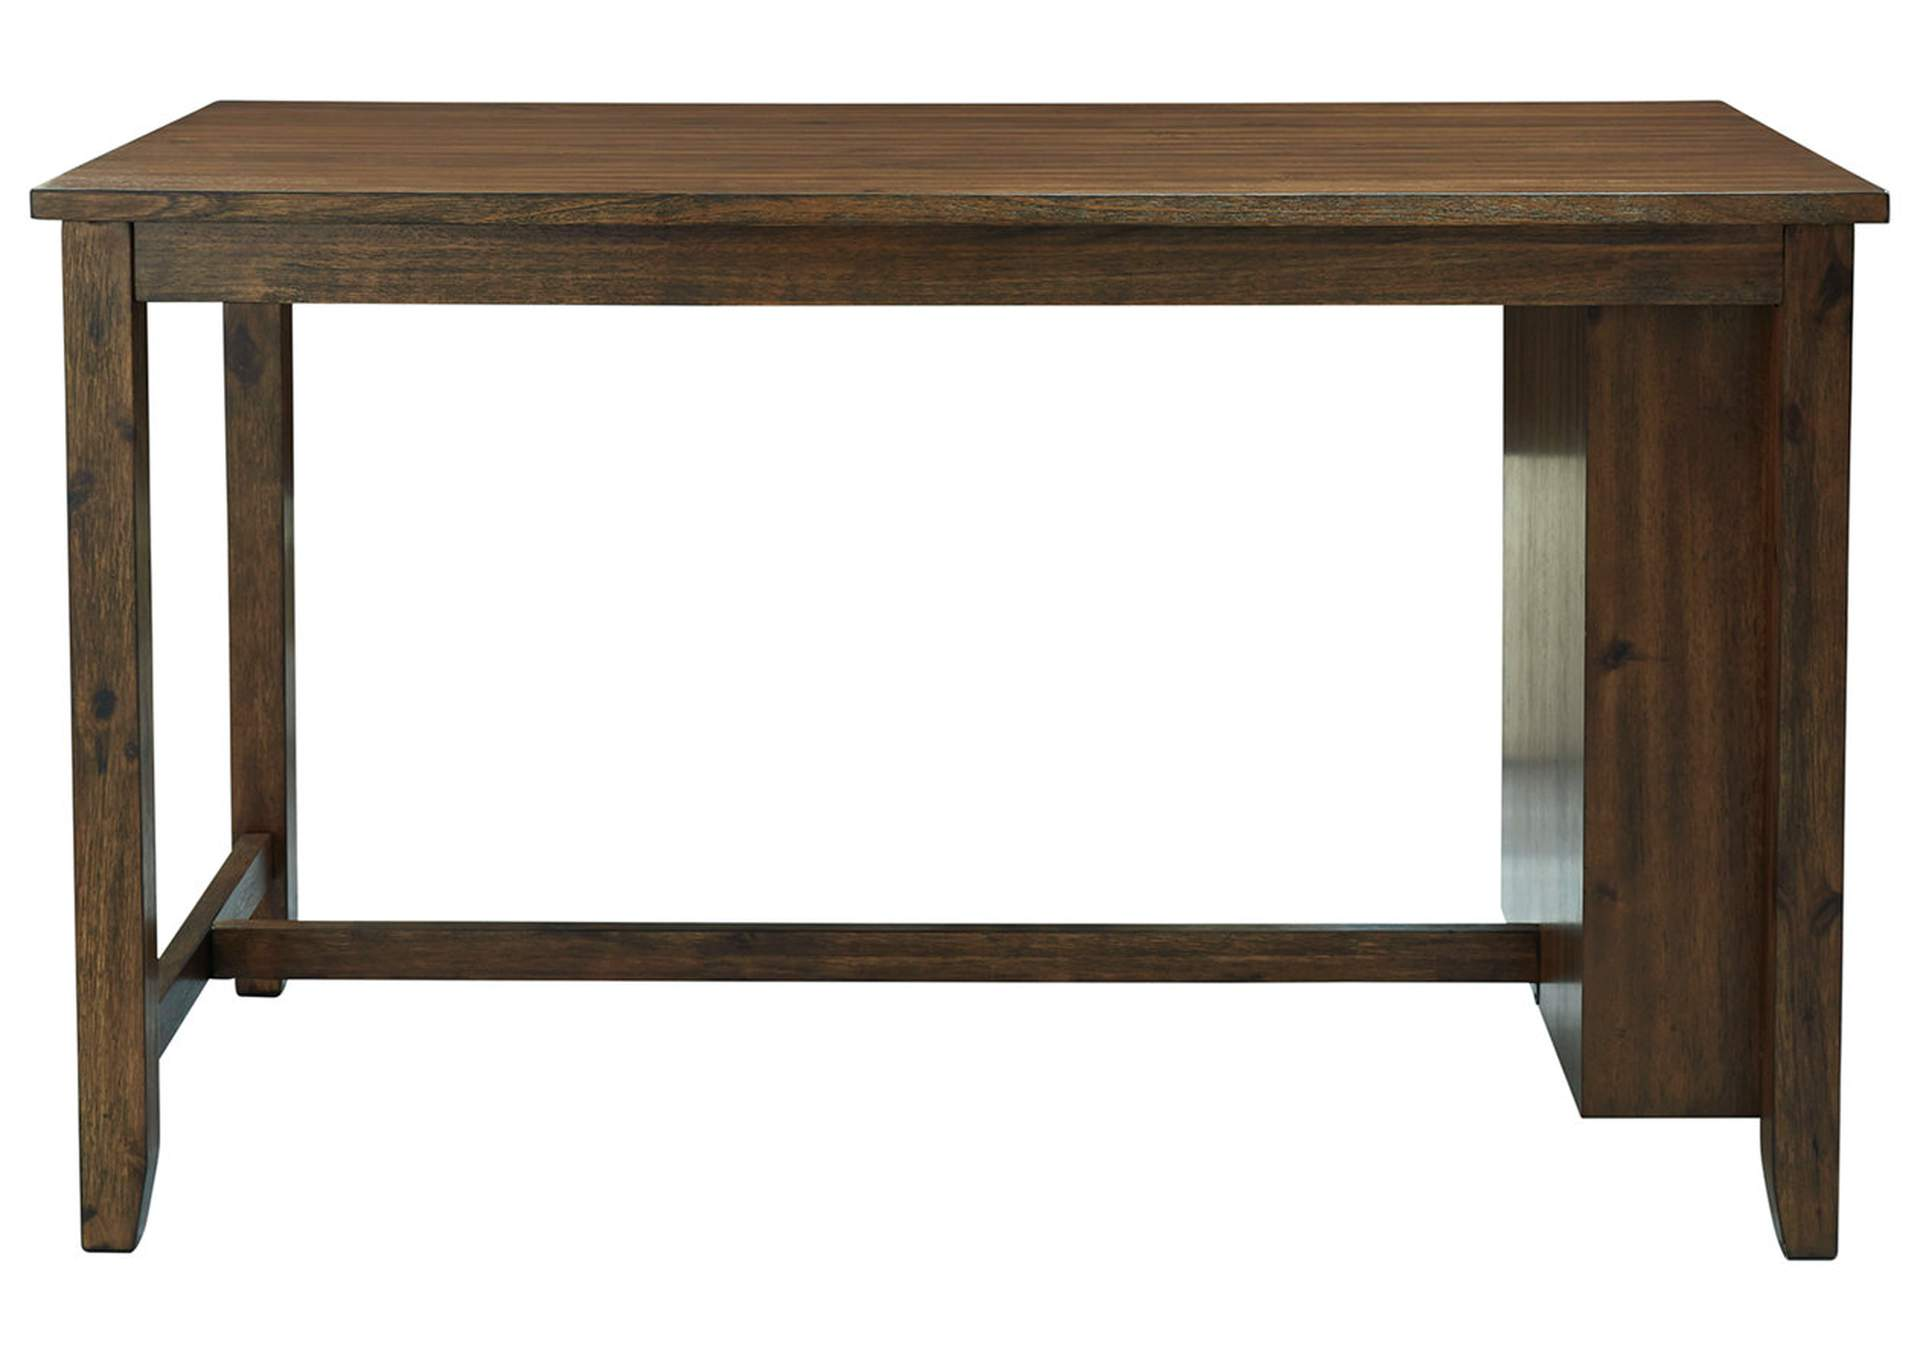 Chaleny Warm Brown Counter Table,Benchcraft